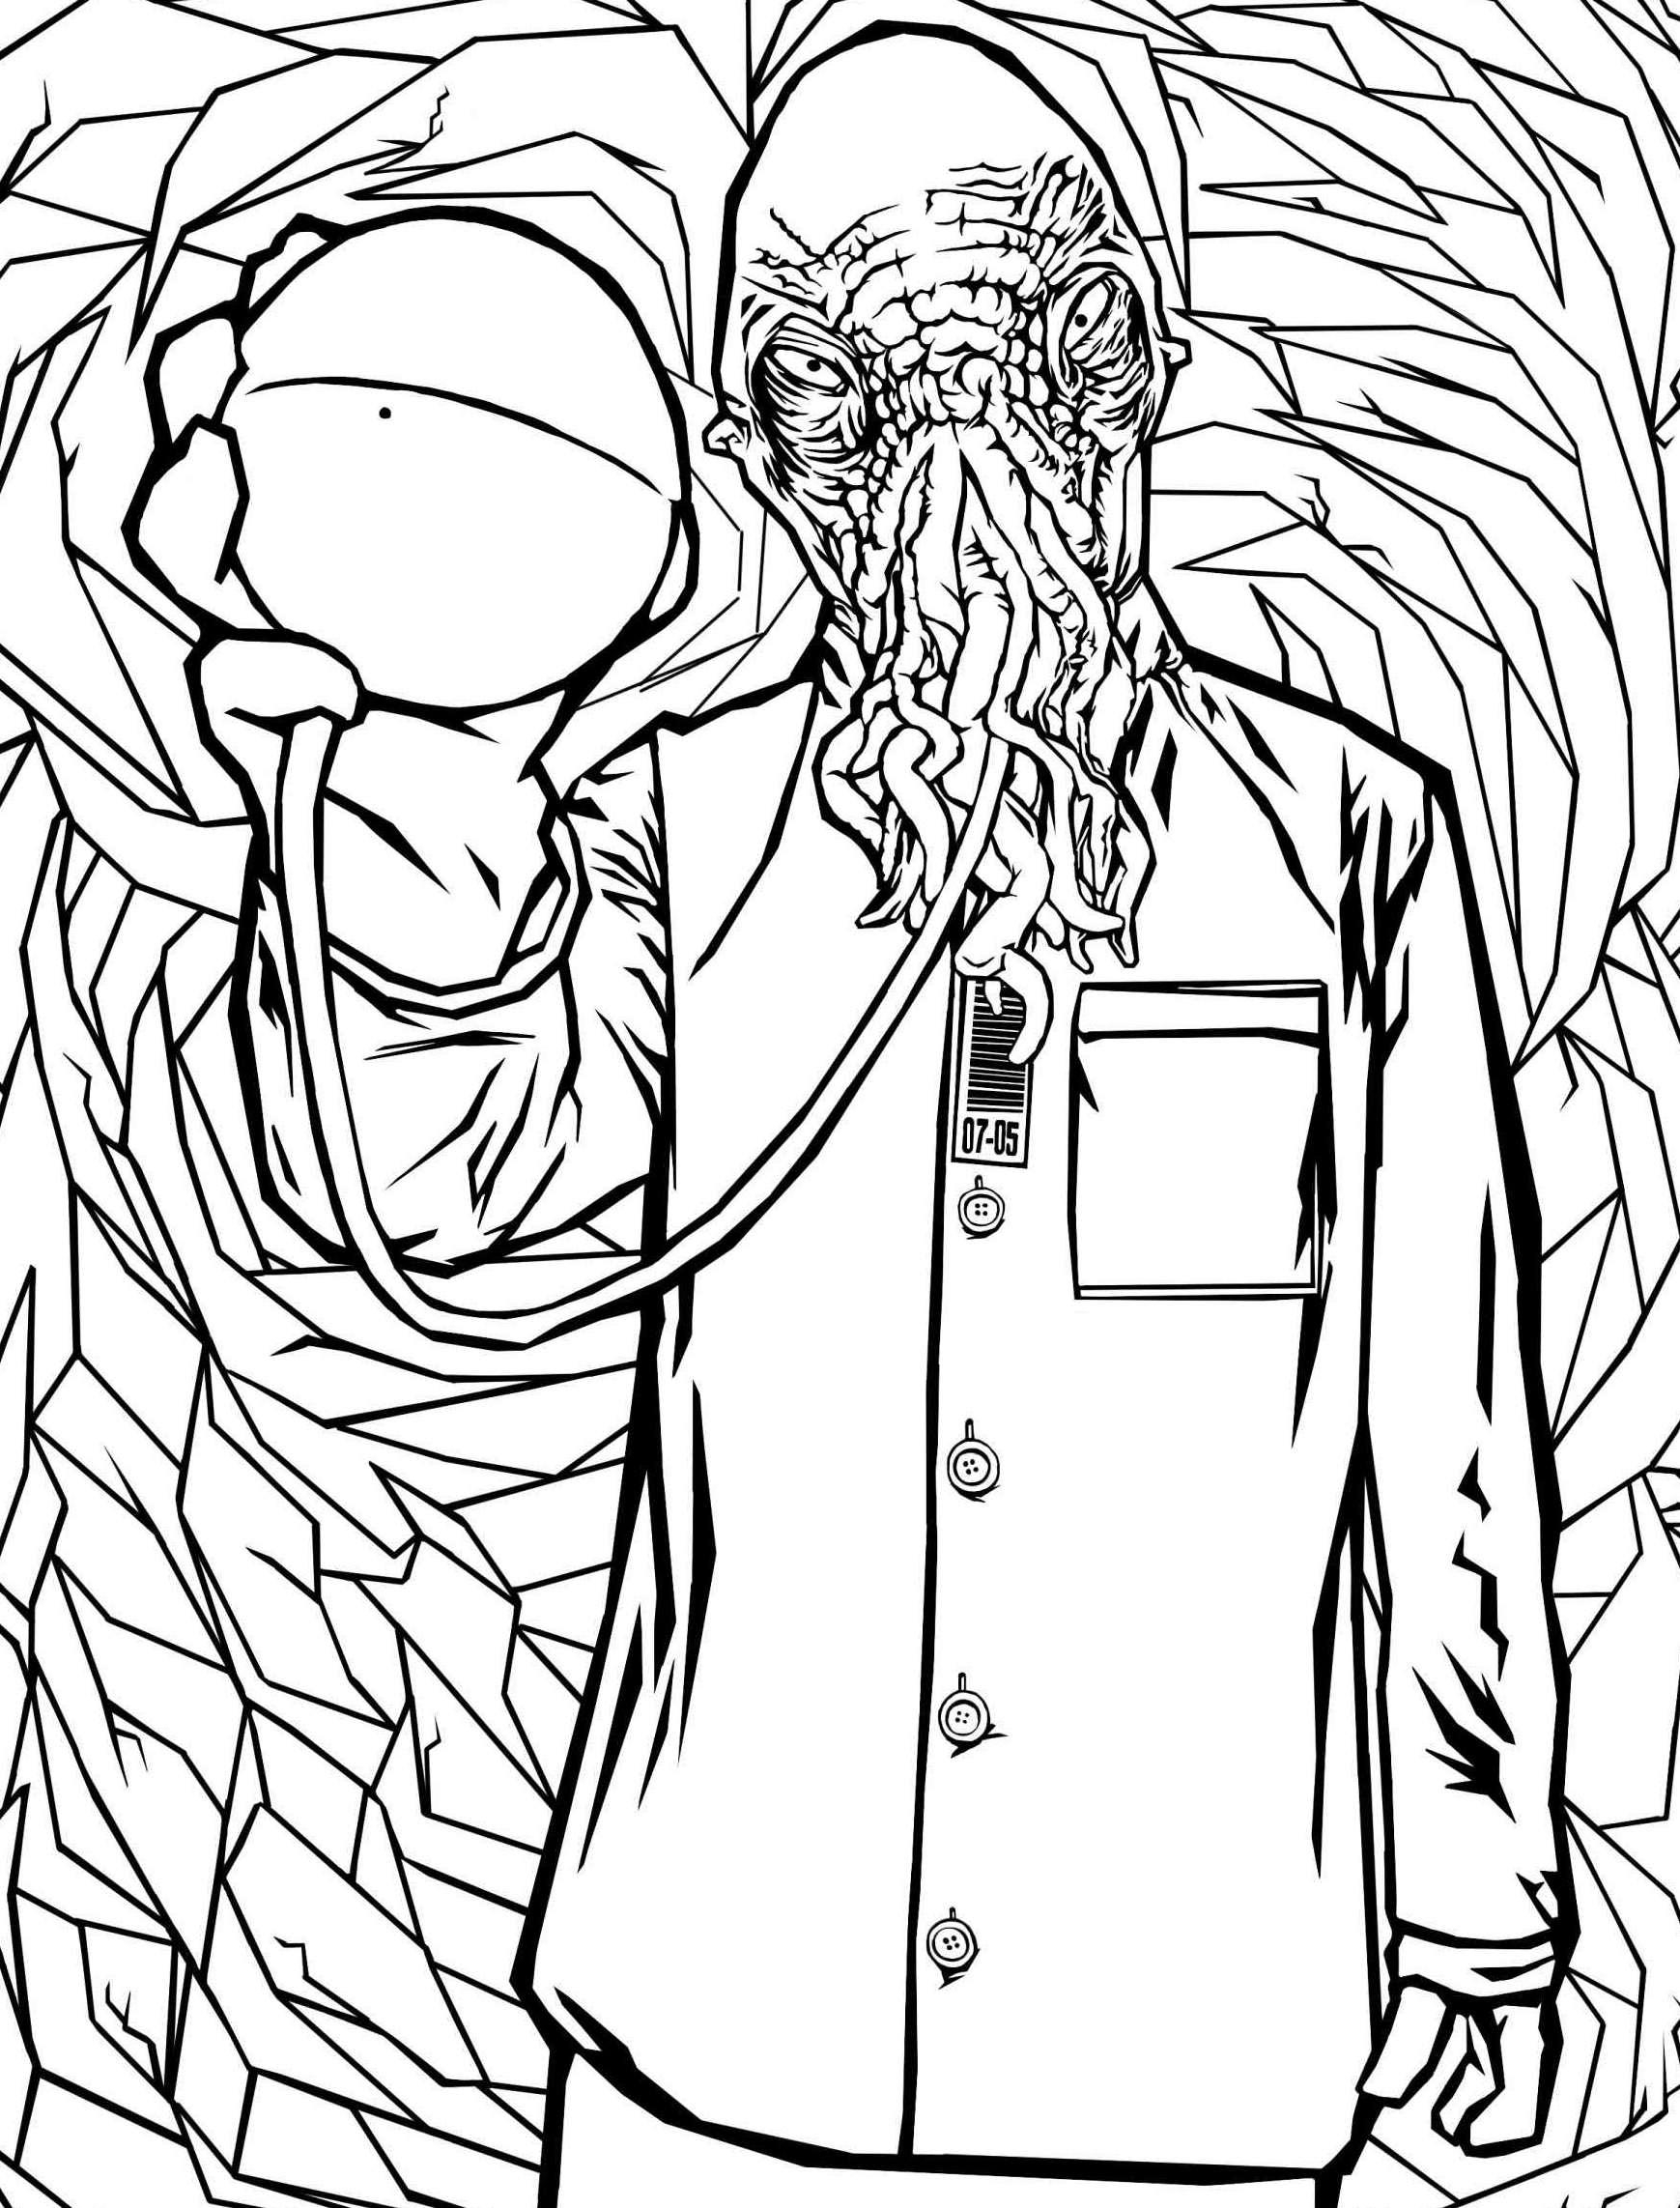 Doctor Who Coloring Page Coloring Pages Splendi Doctor Who Coloring Pages Photo